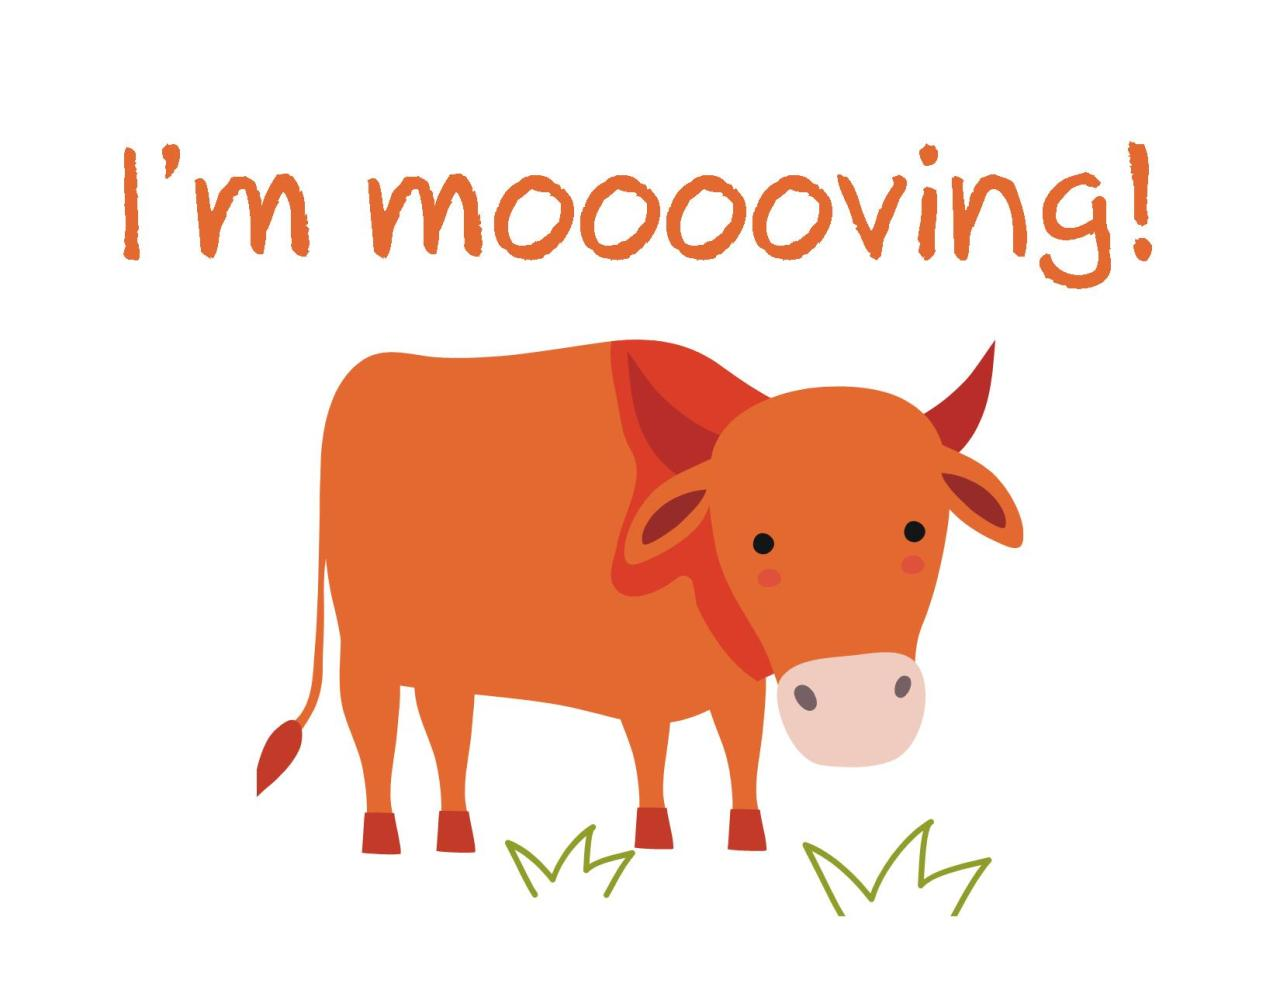 Moving announcement Change of address card Free Printable i m mooooving